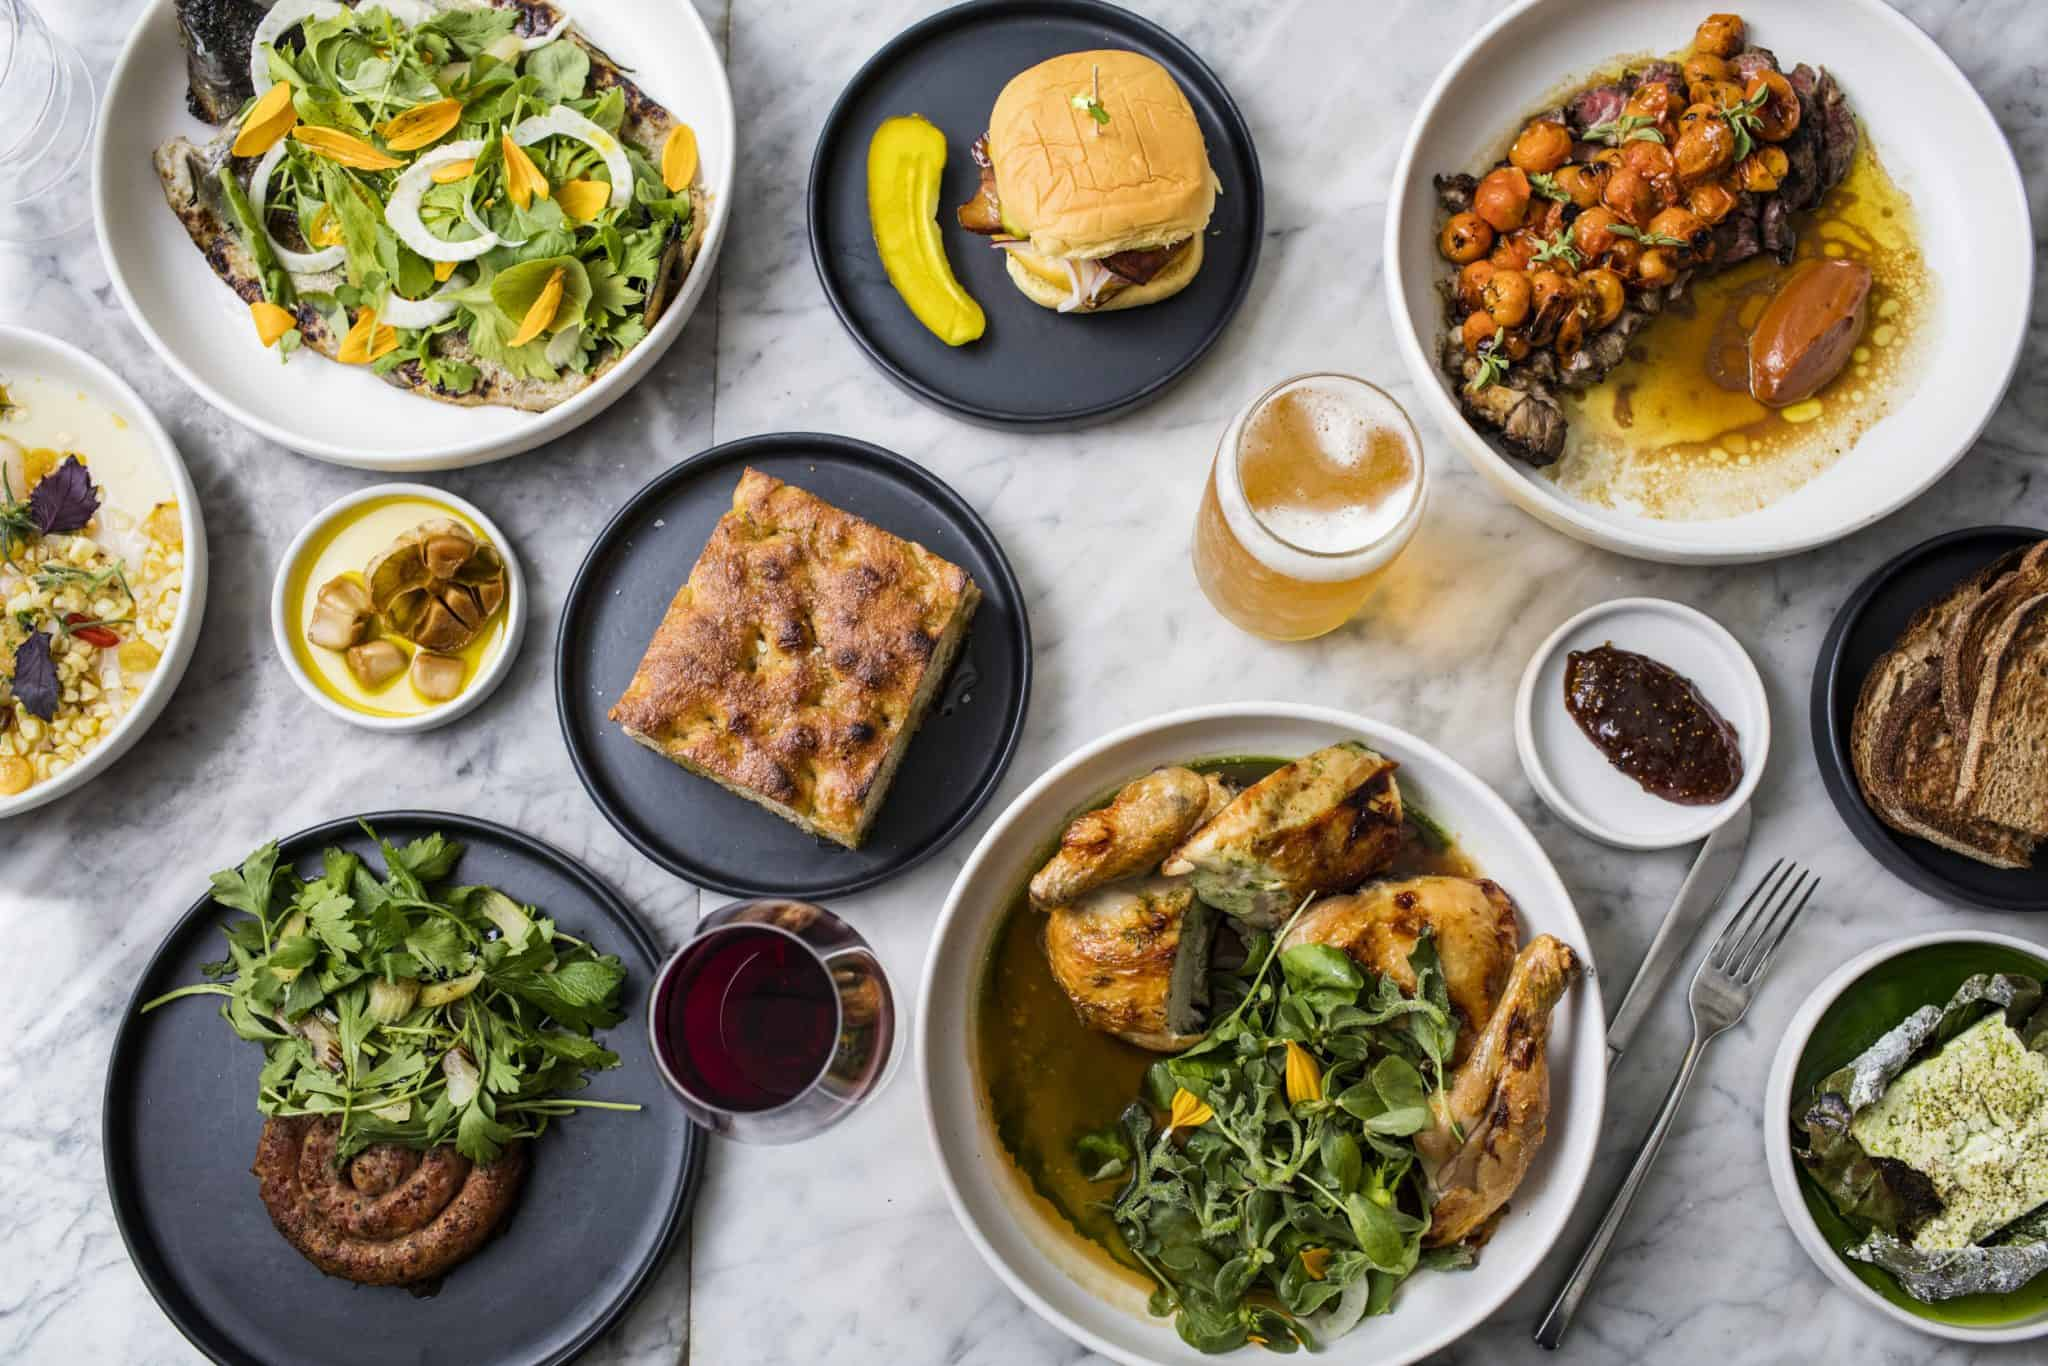 Sunday In Brooklyn Dishes London's best new restaurant openings July 2021